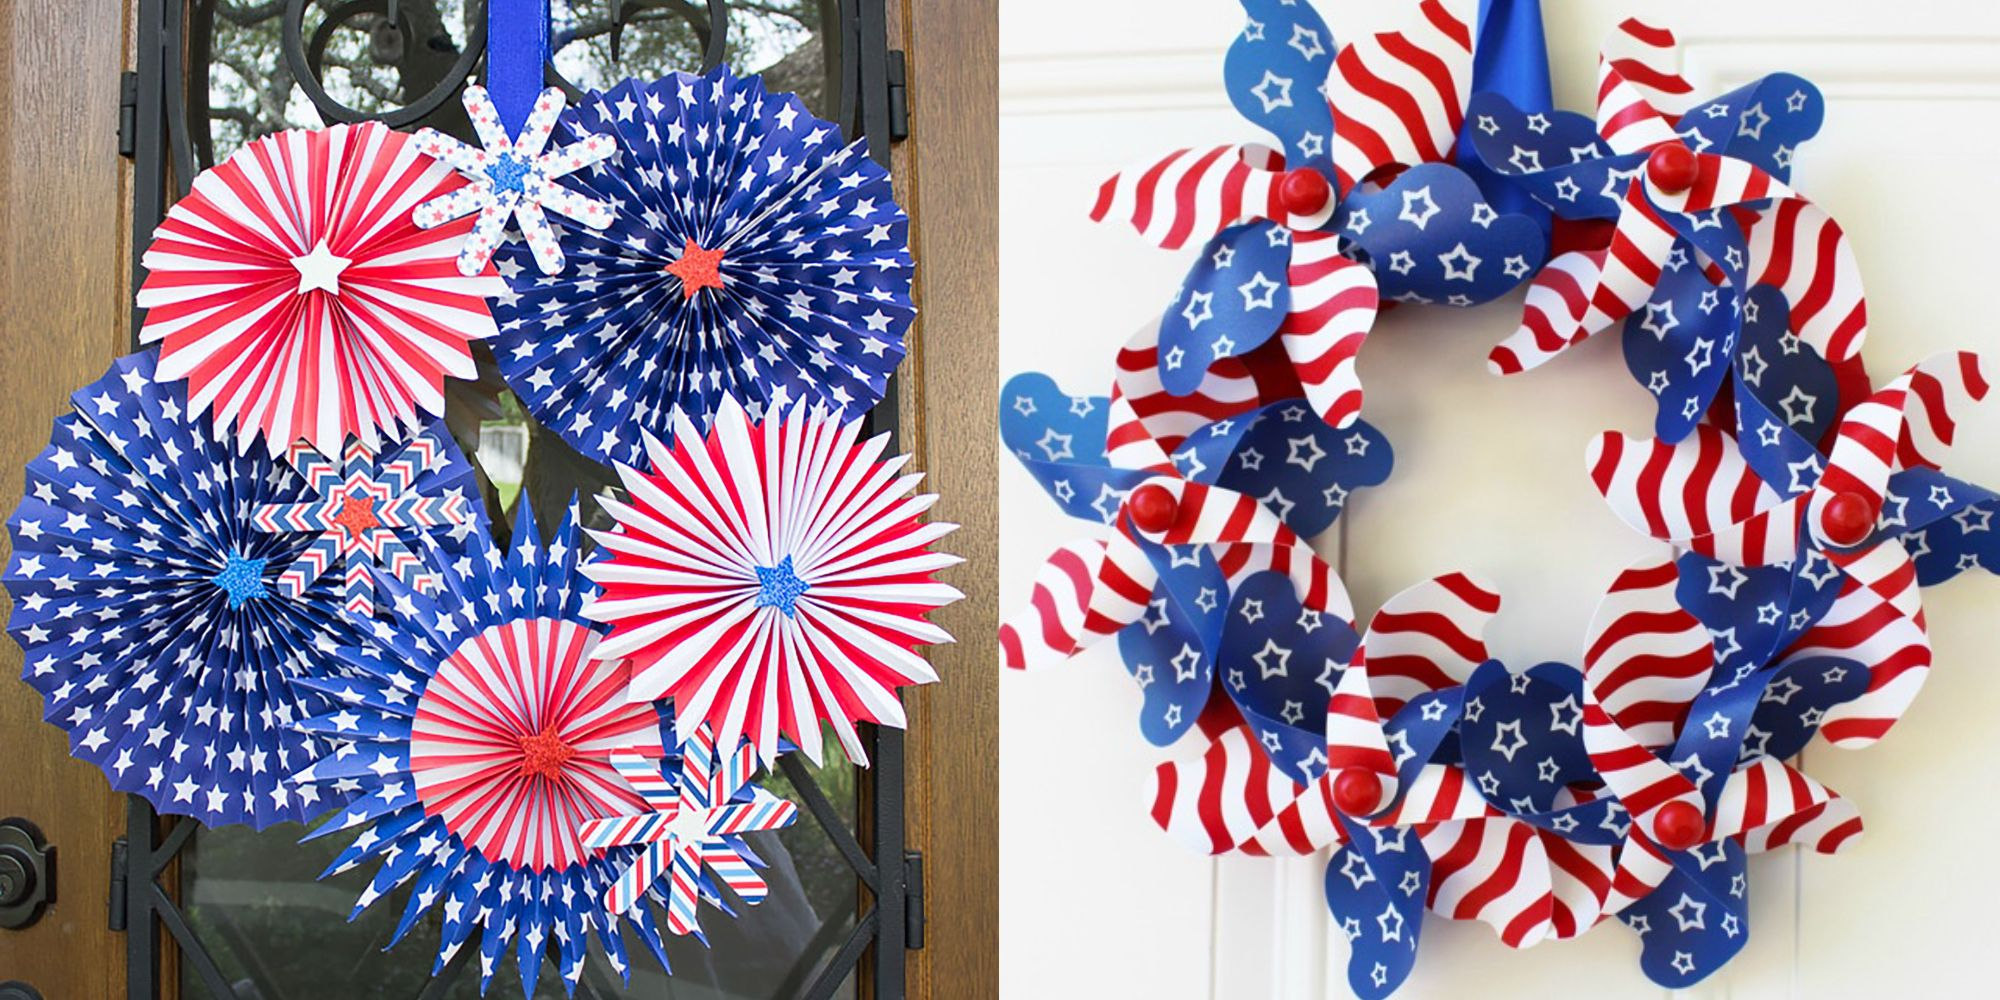 7194e79b4642 15 DIY 4th of July Wreaths - How to Make a Patriotic Wreath